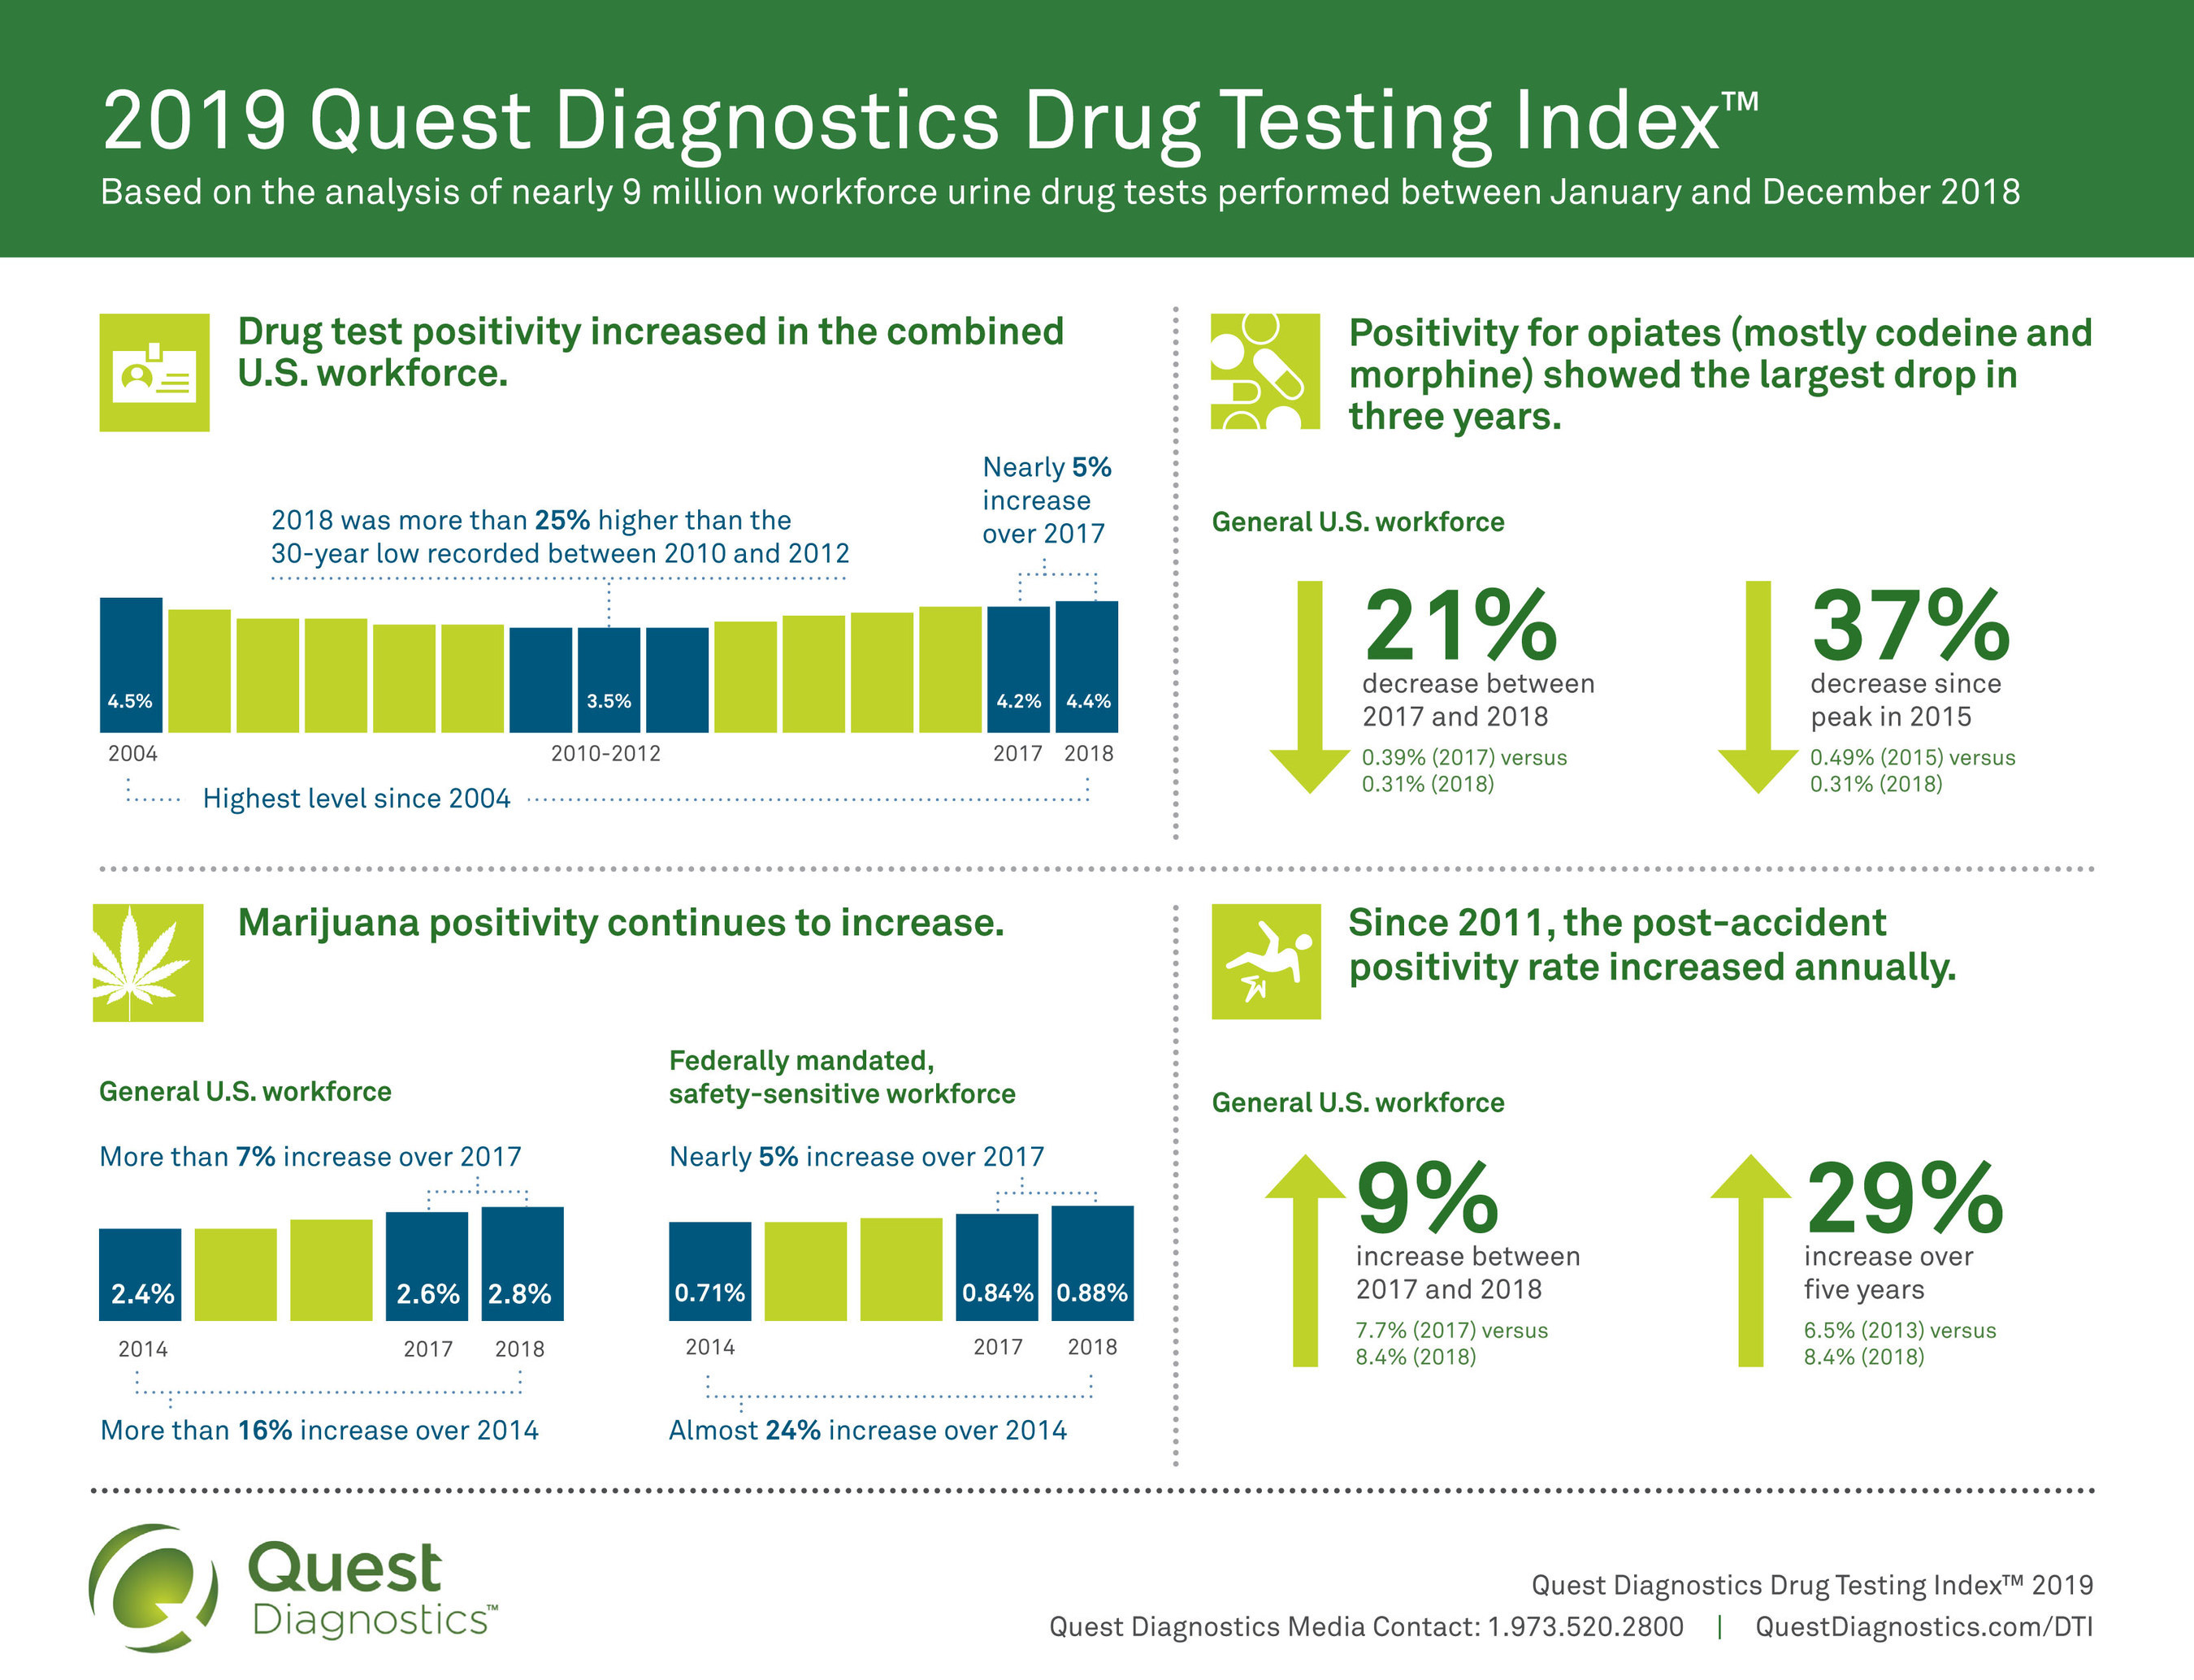 2019 Quest Diagnostics Drug Testing Index